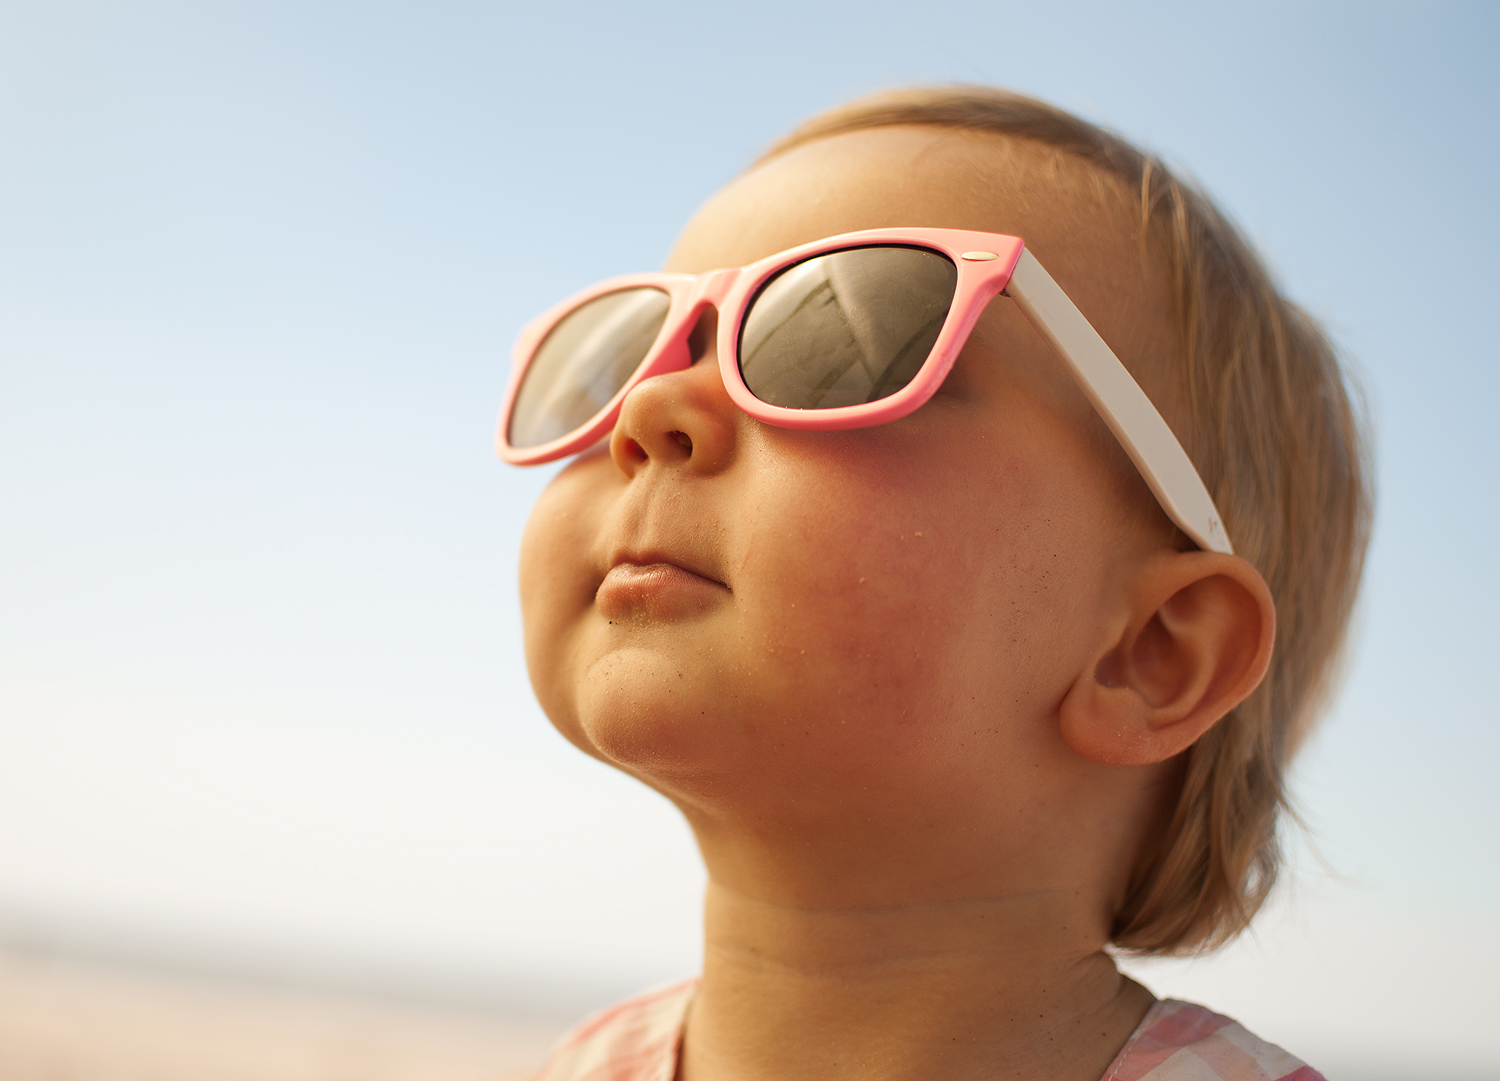 How To Safely Avoid Sun Damage